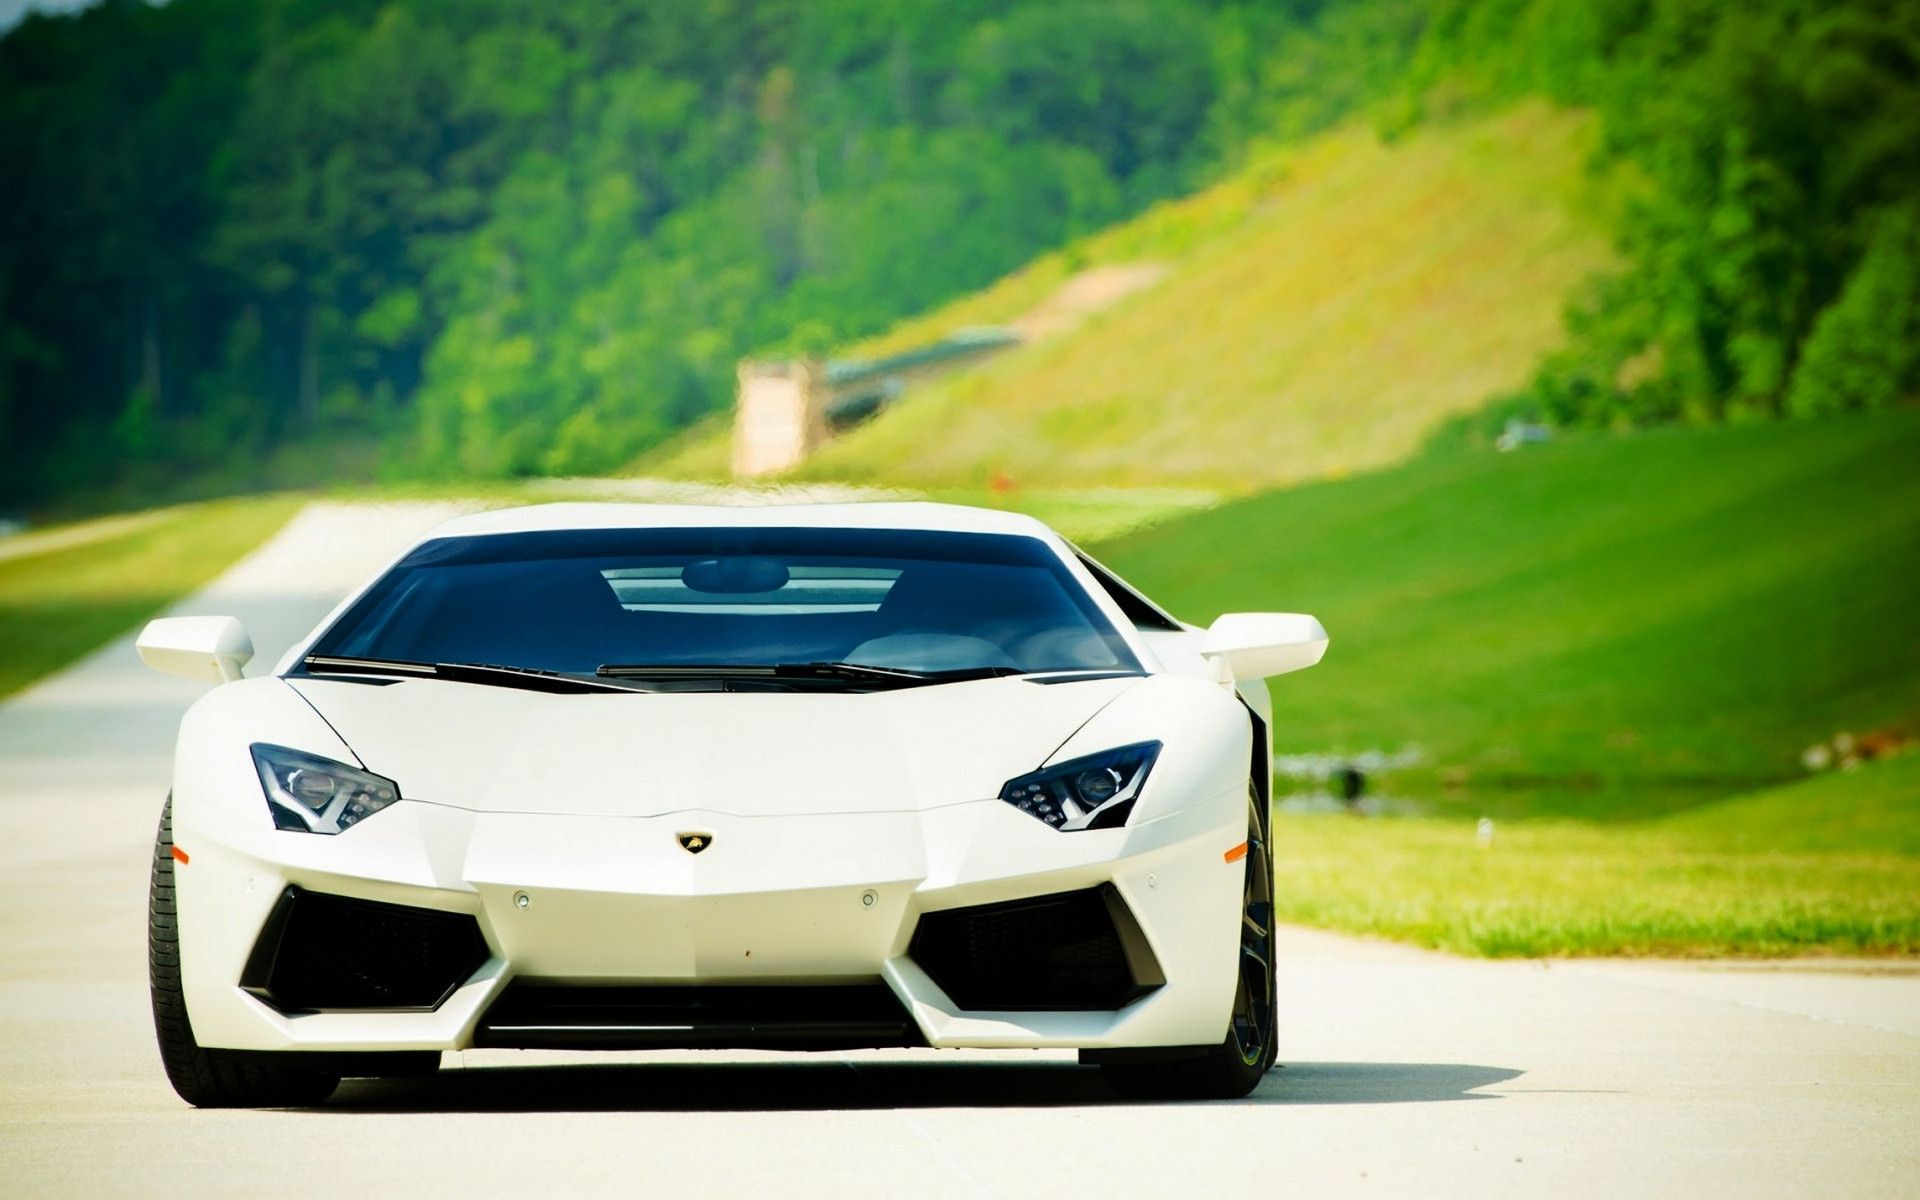 Lamborghini Cars Wallpapers Free Download Hd Latest Motors Images 1920 1080 Lamborghini Lamborghini Cars Lamborghini Aventador Wallpaper Lamborghini Aventador